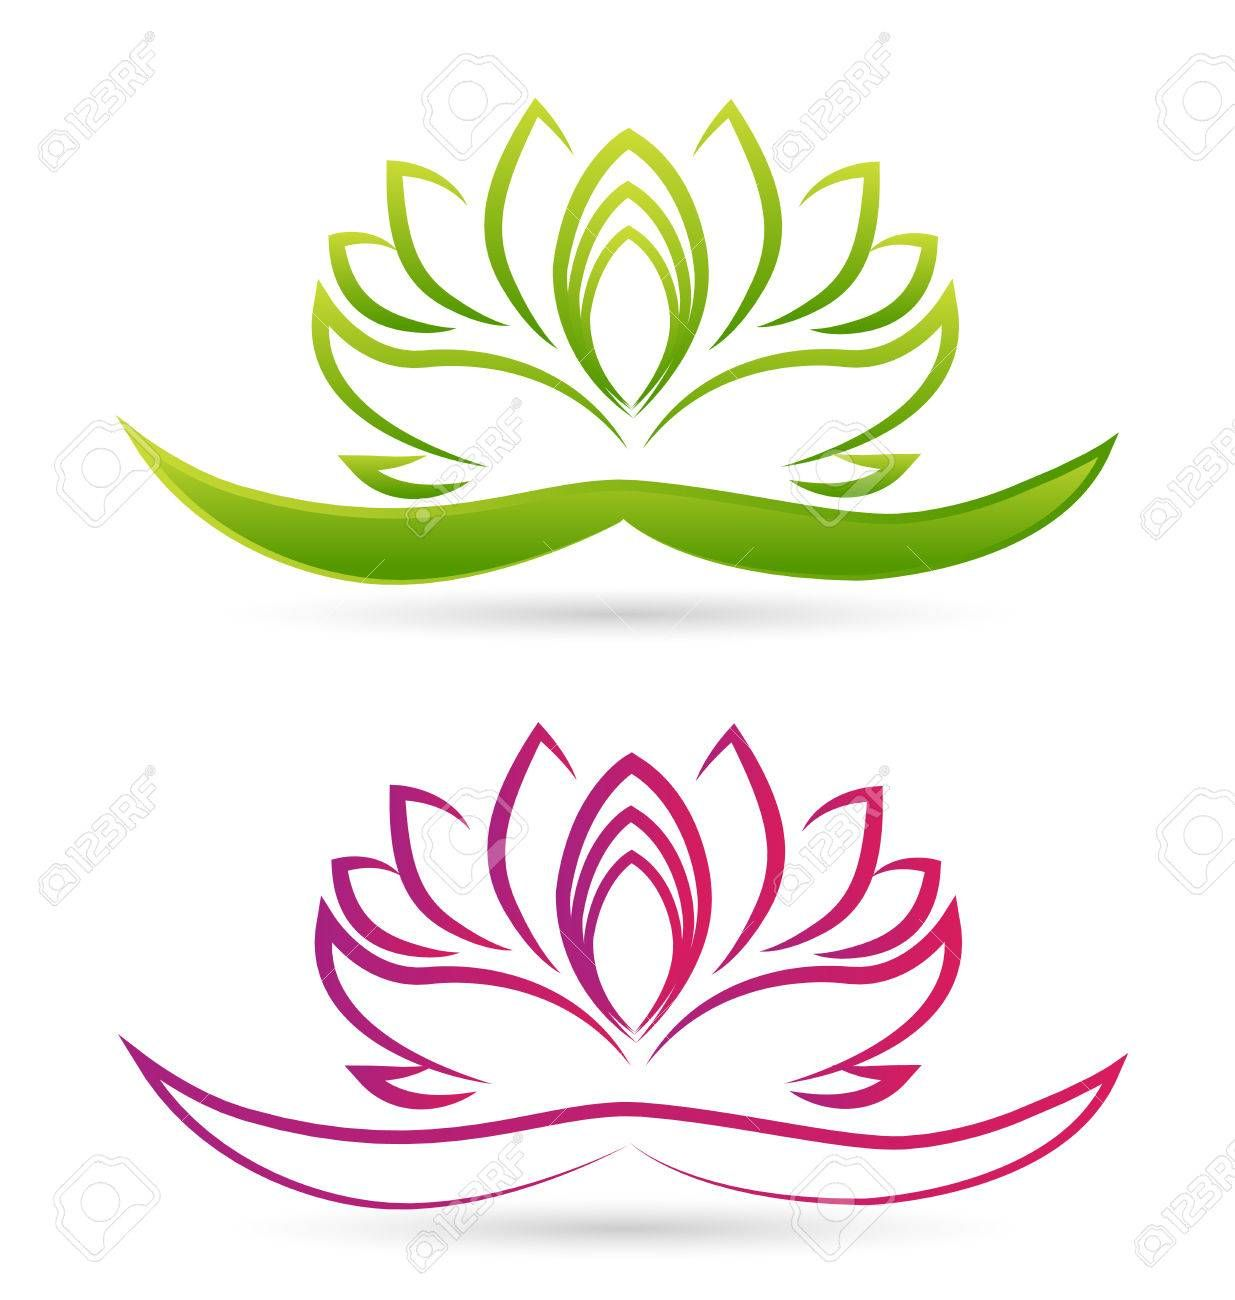 Stock Vector Lotus art, Lotus vector, Lotus flower